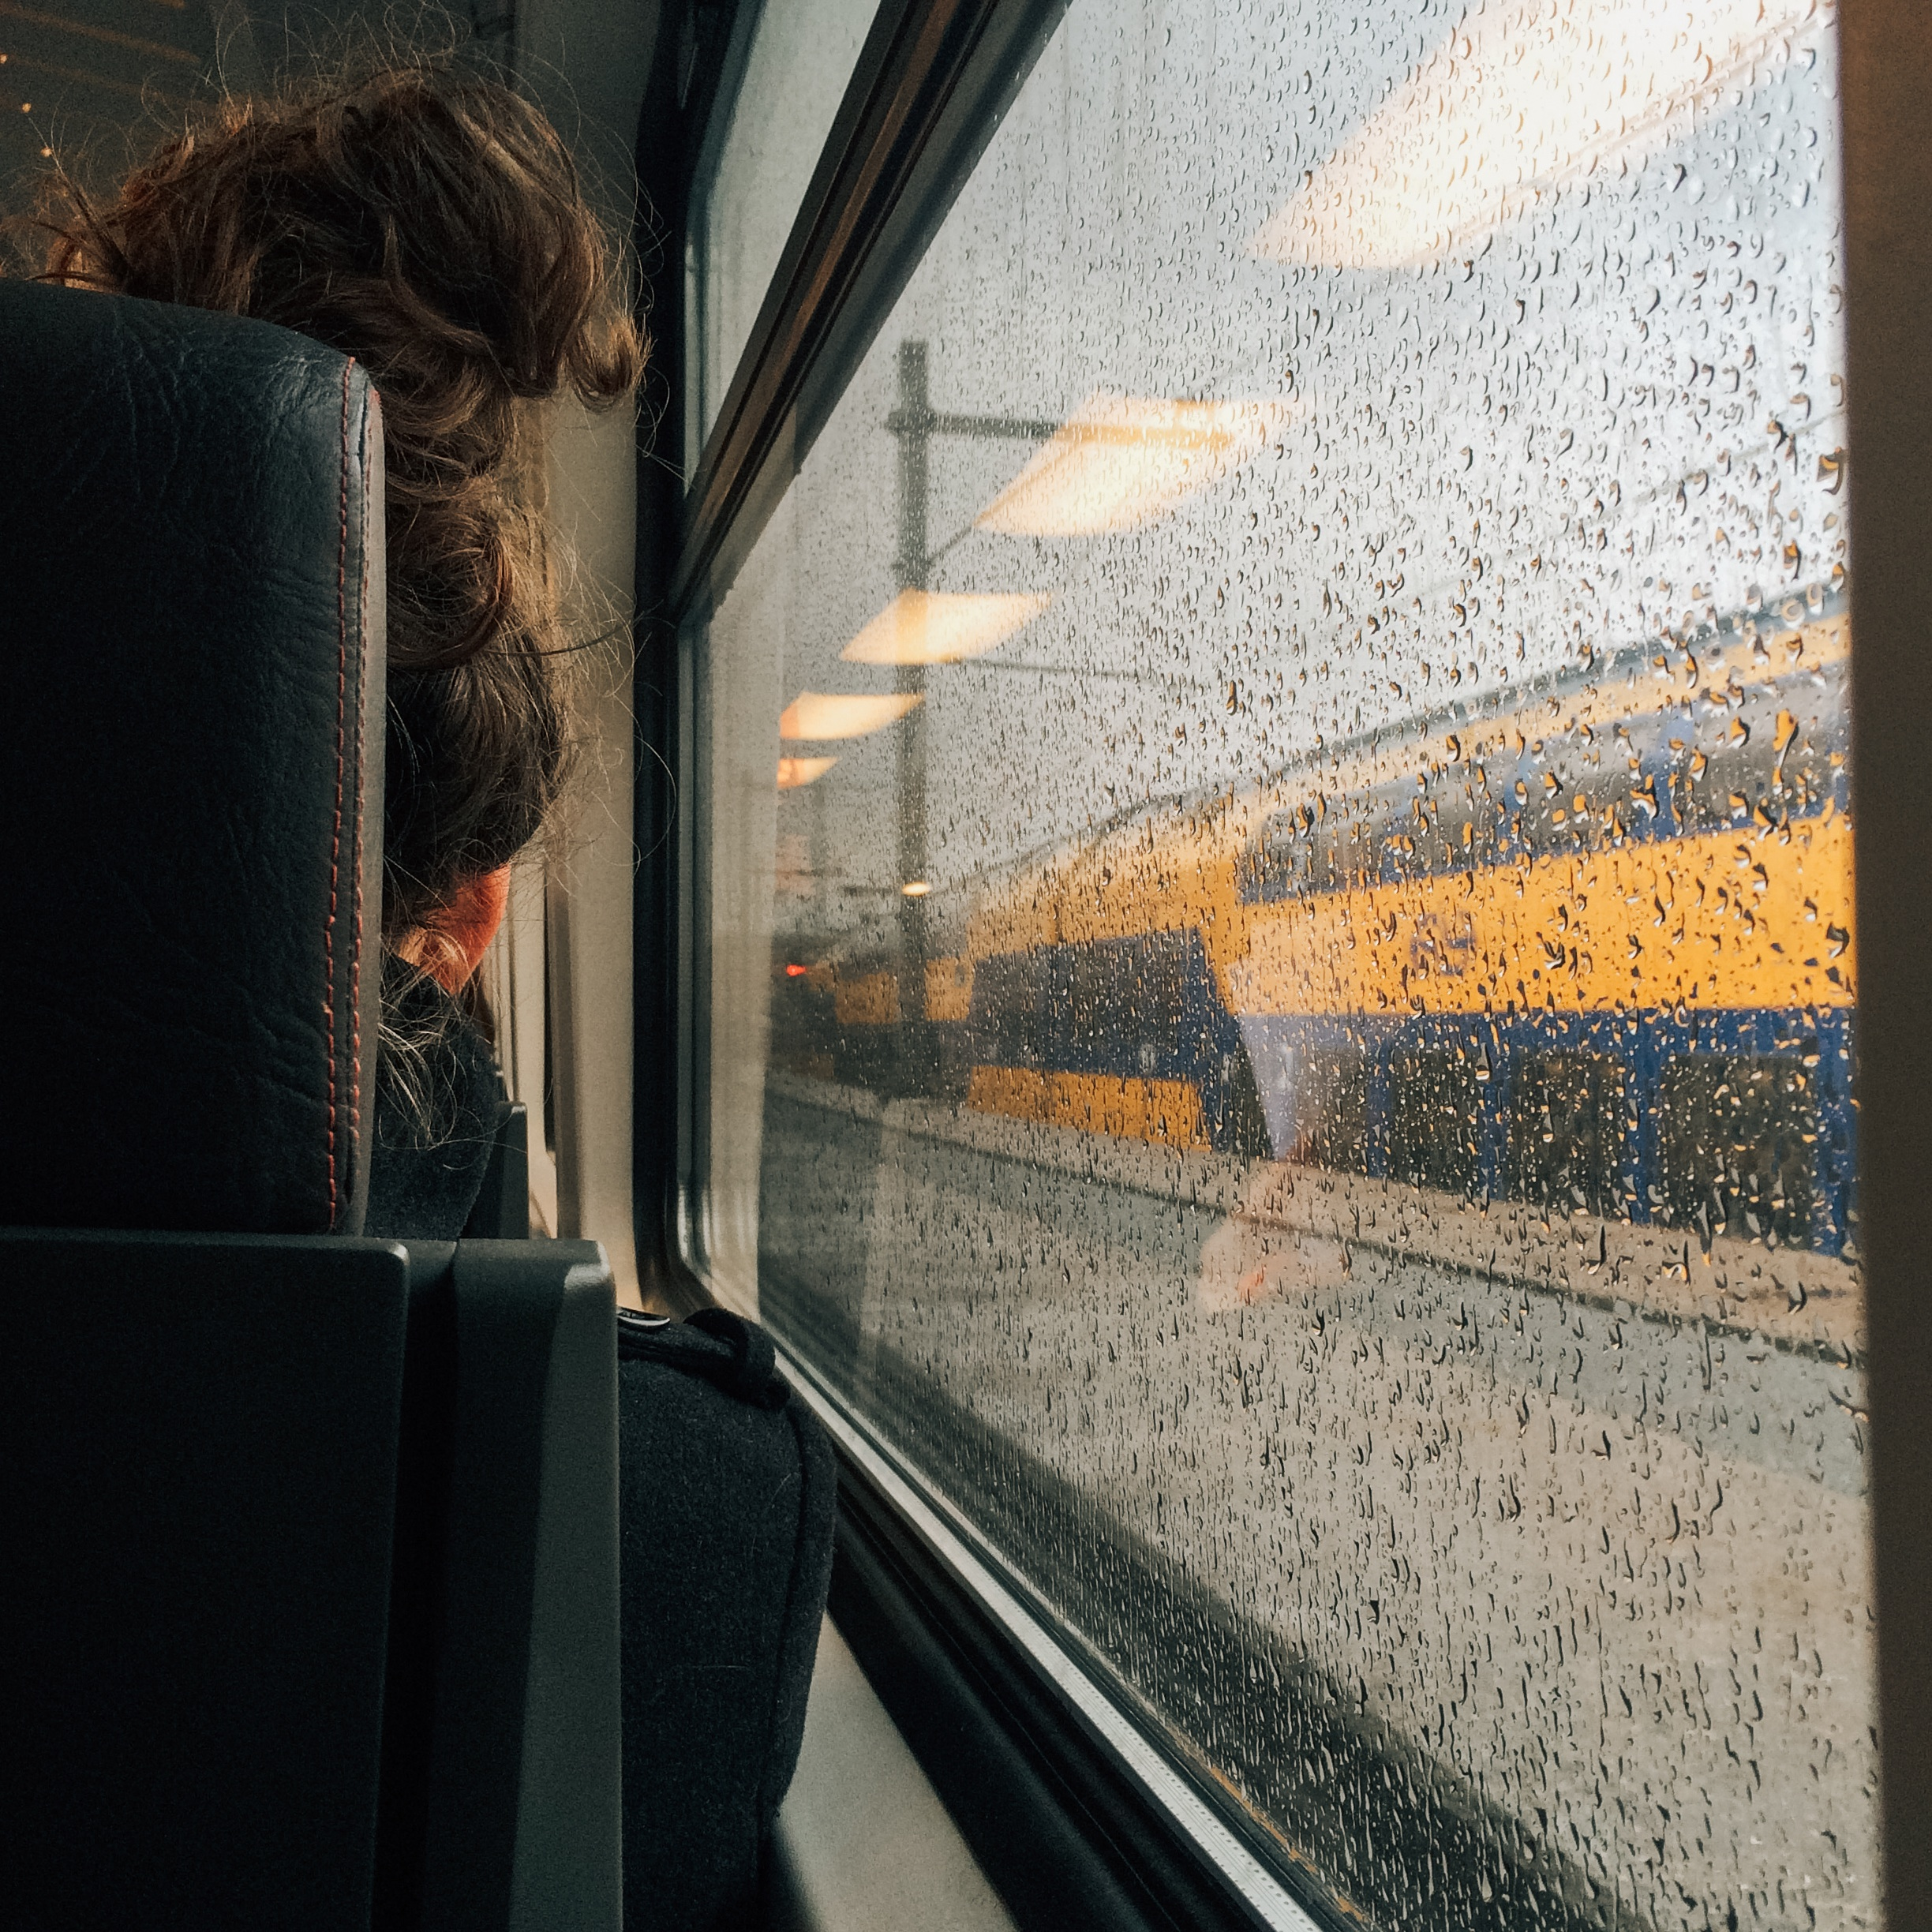 Train, Water, Window, Seat, Journey, HQ Photo